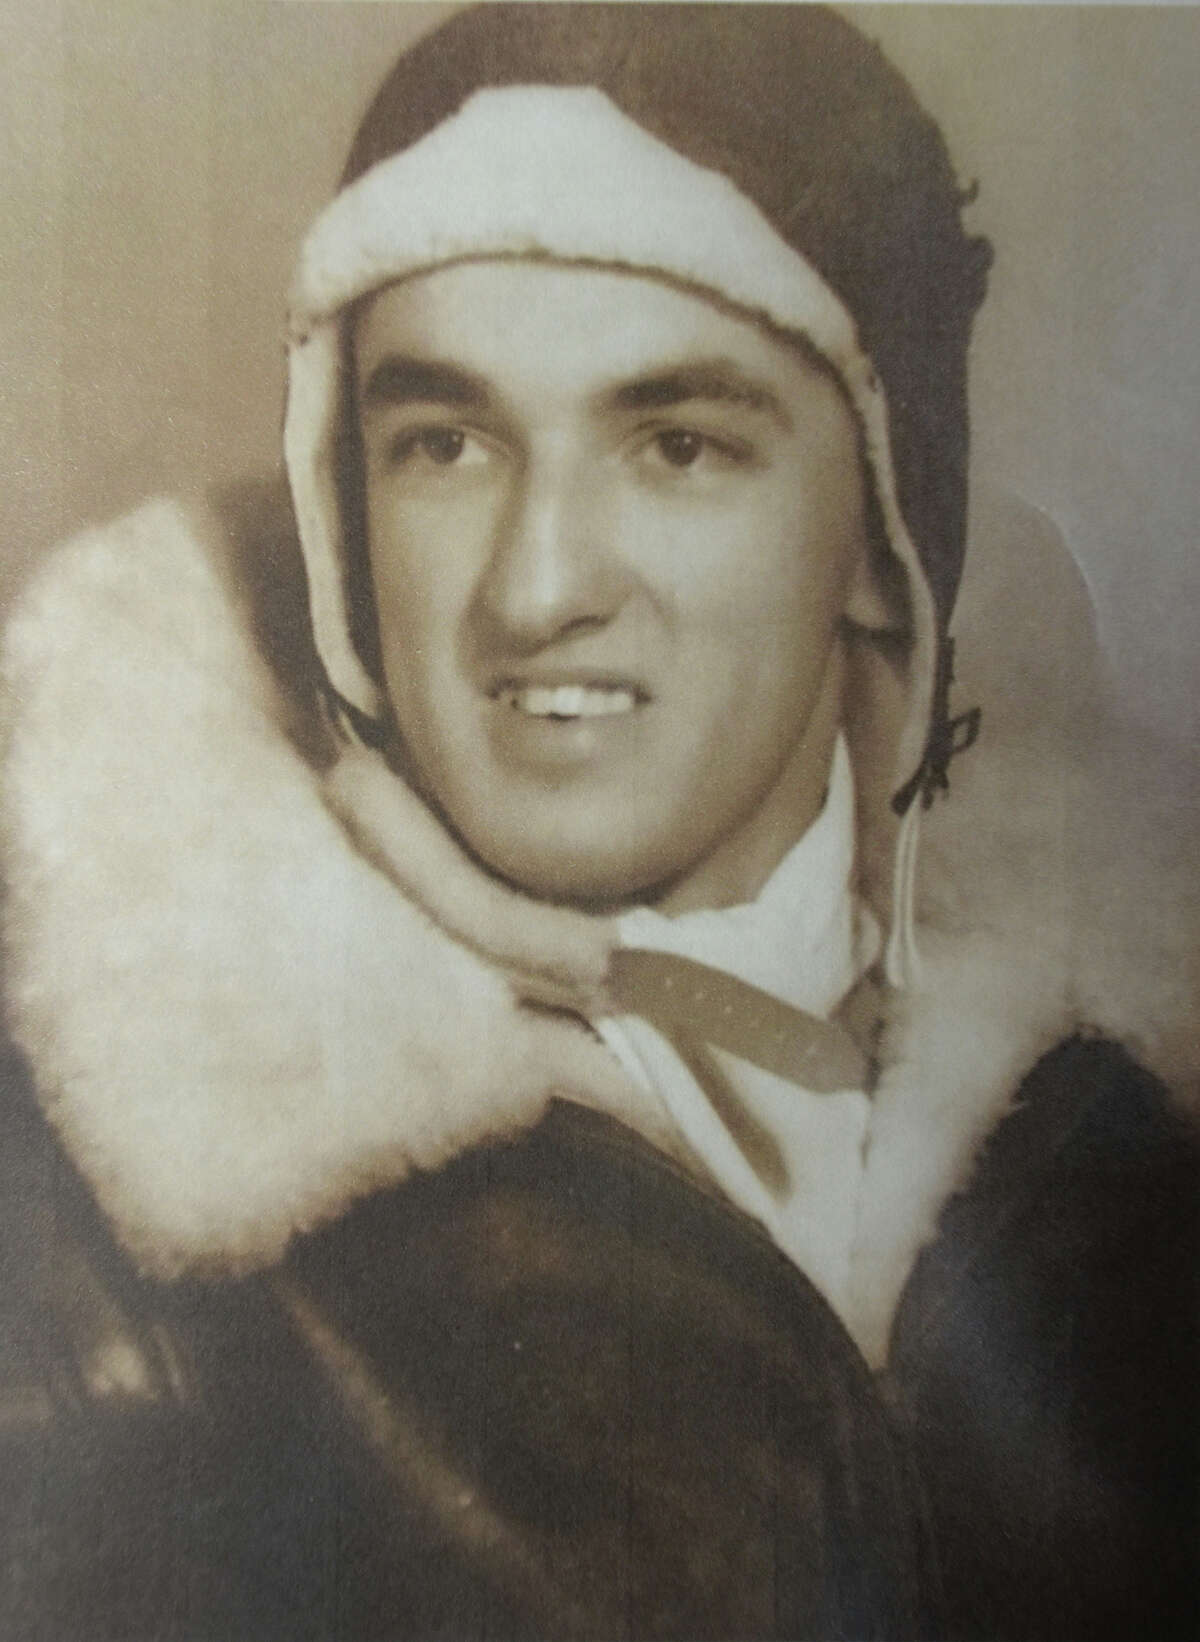 Clyde DeFrate during his time as an airmen in the U.S. Air Force. Photo provided by Clyde DeFrate